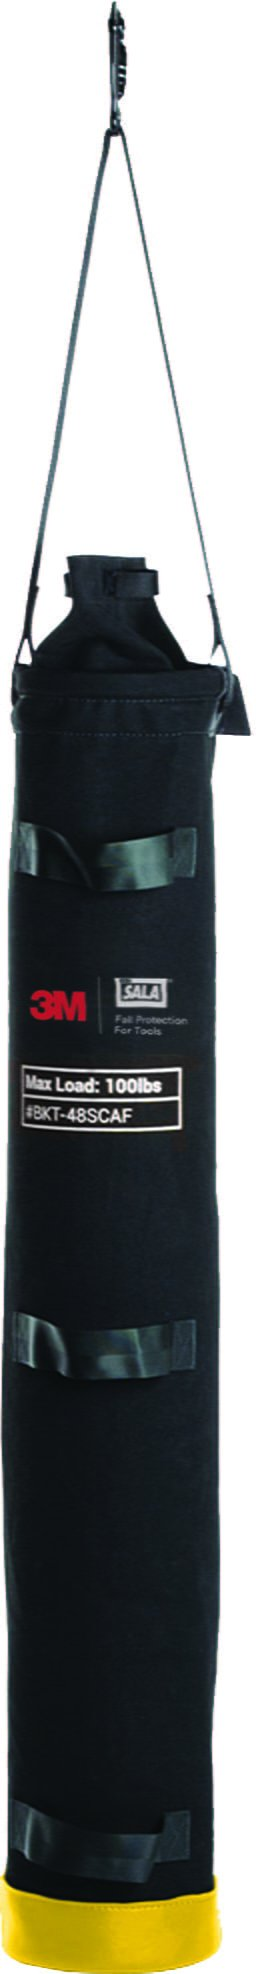 3M™ DBI-SALA® Long Safe Bucket 100lb Load Rated Hook and Loop Canvas 1500136, 1 EA